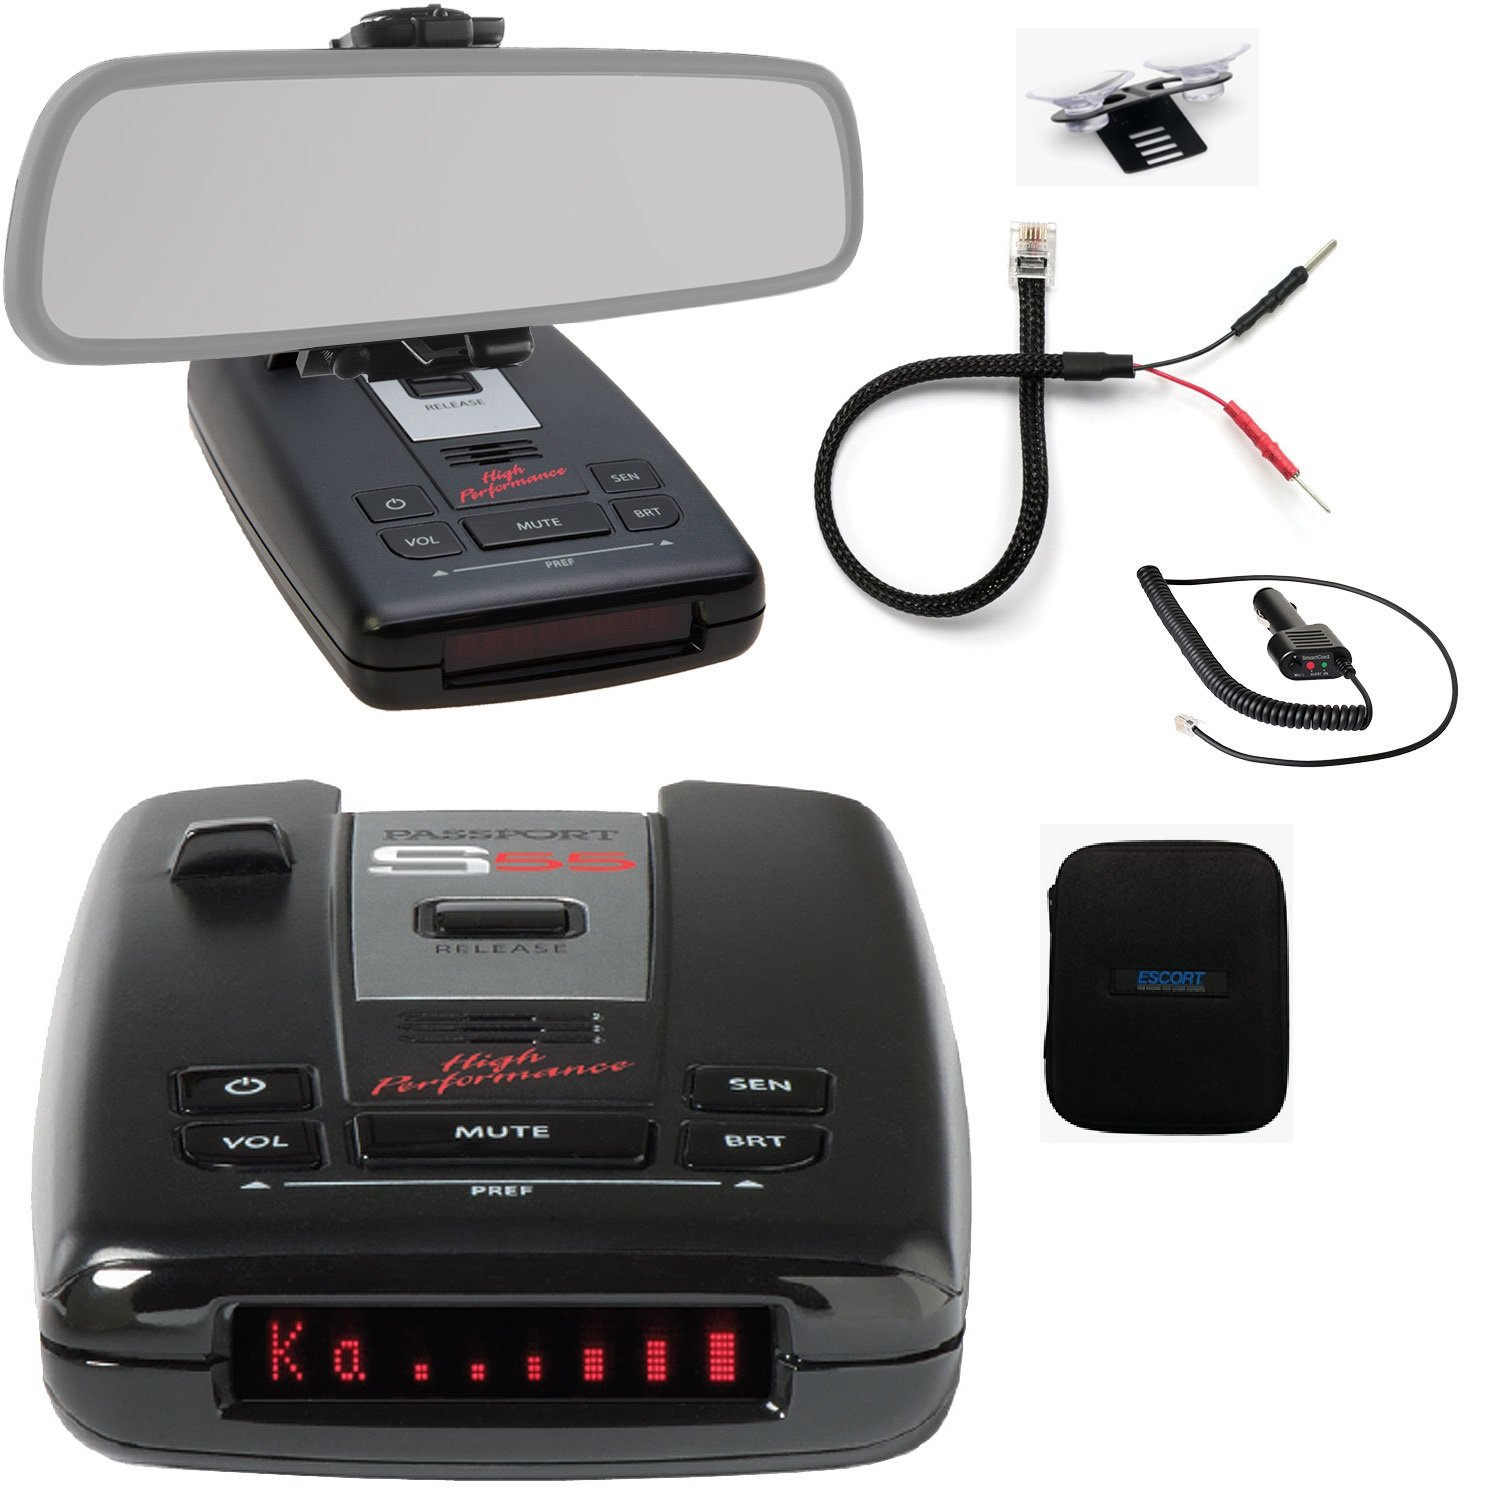 Escort Passport S55 Pro Radar and Laser Detector with DSP (High-Intensity Red Display) and Complete Mirror Mount Kit by Escort